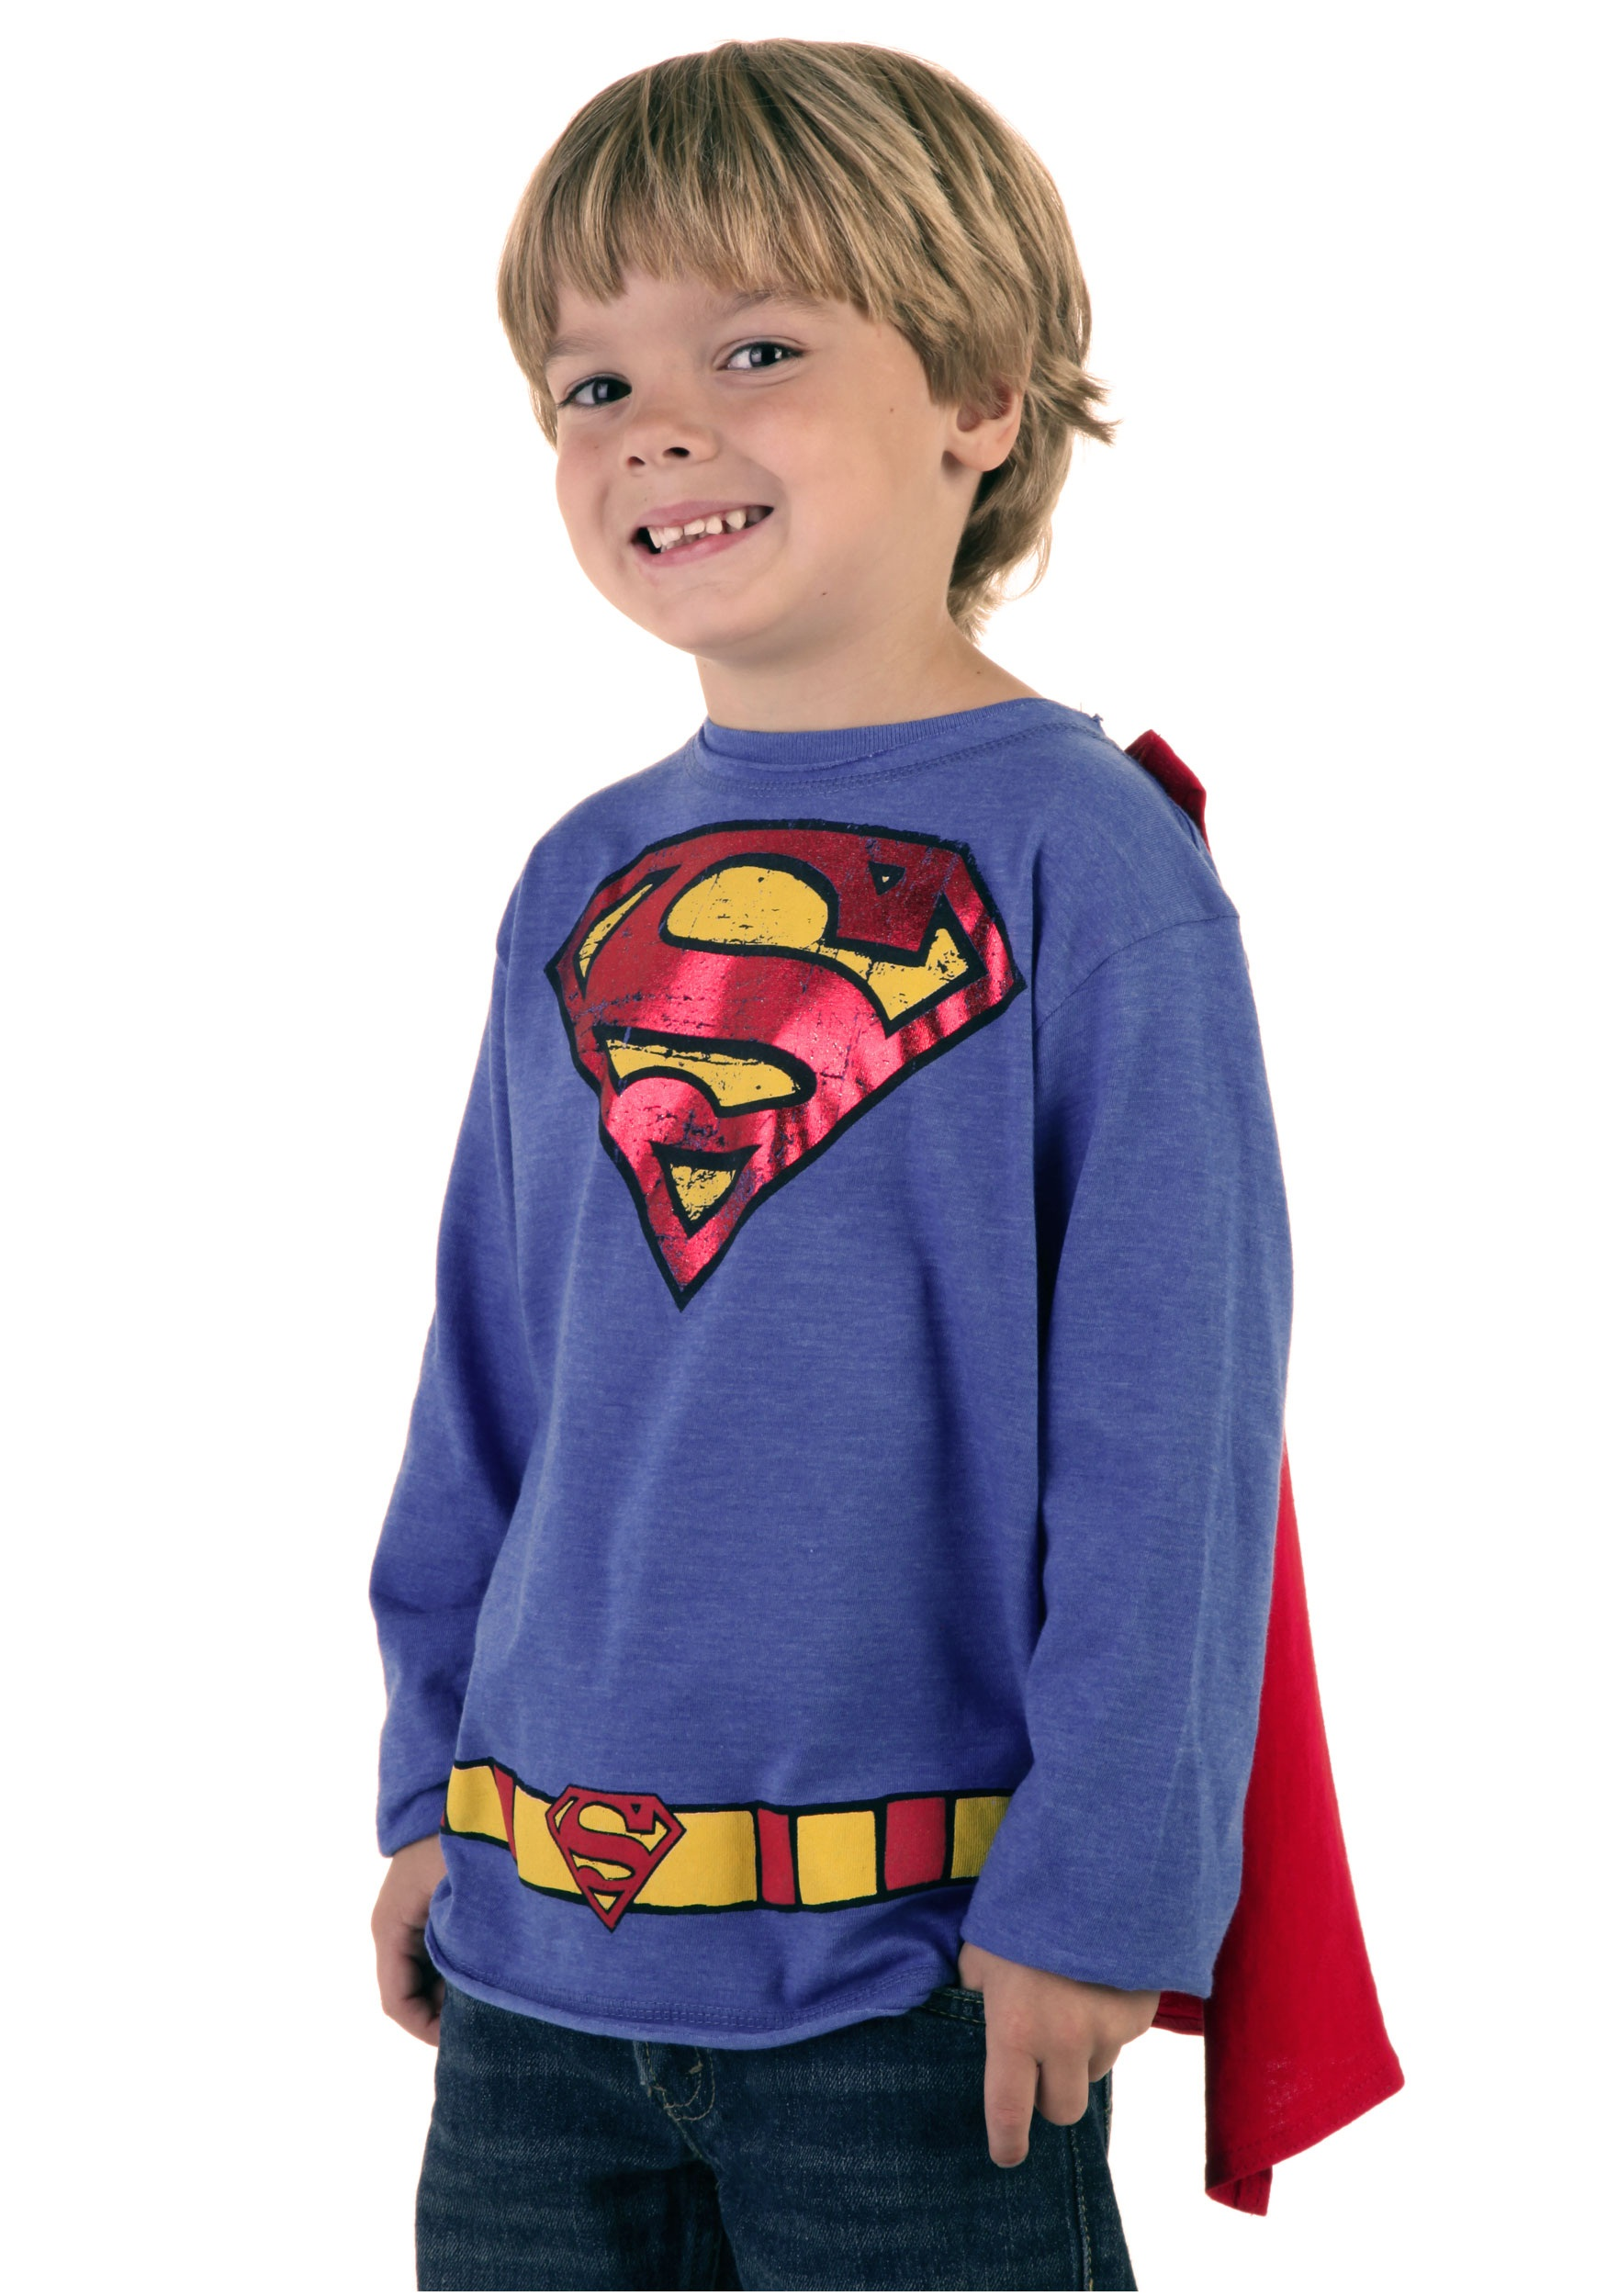 Kids krypton hero royal blue superman t shirt halloween for Costume t shirts online